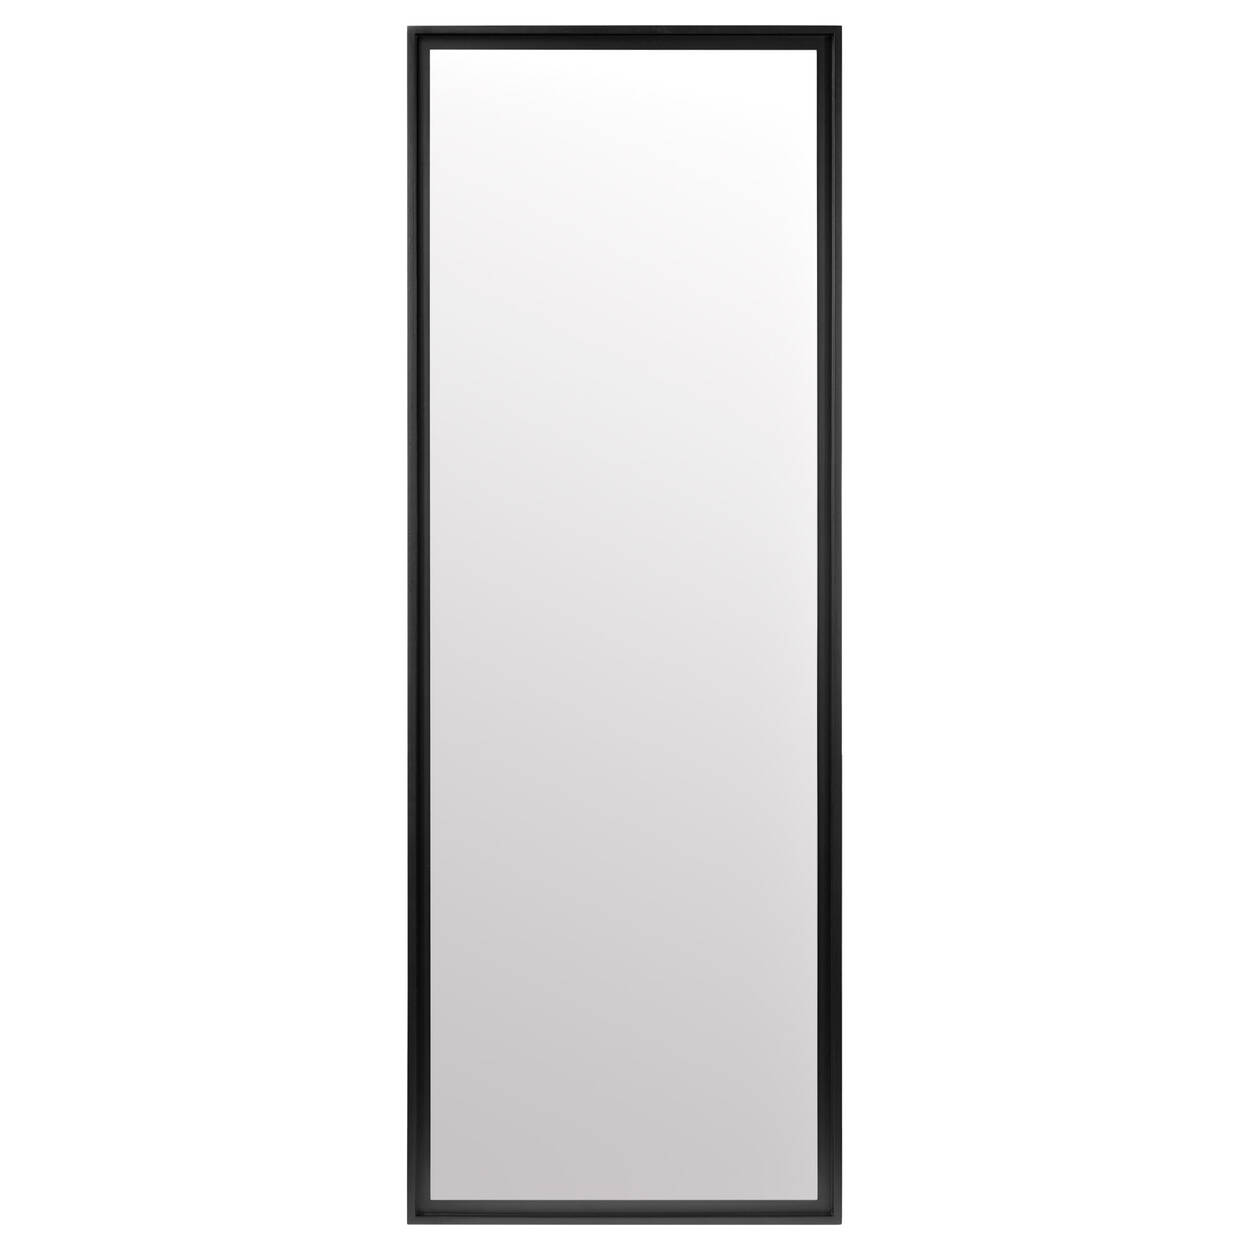 Full-Size Mirror with Wooden Frame